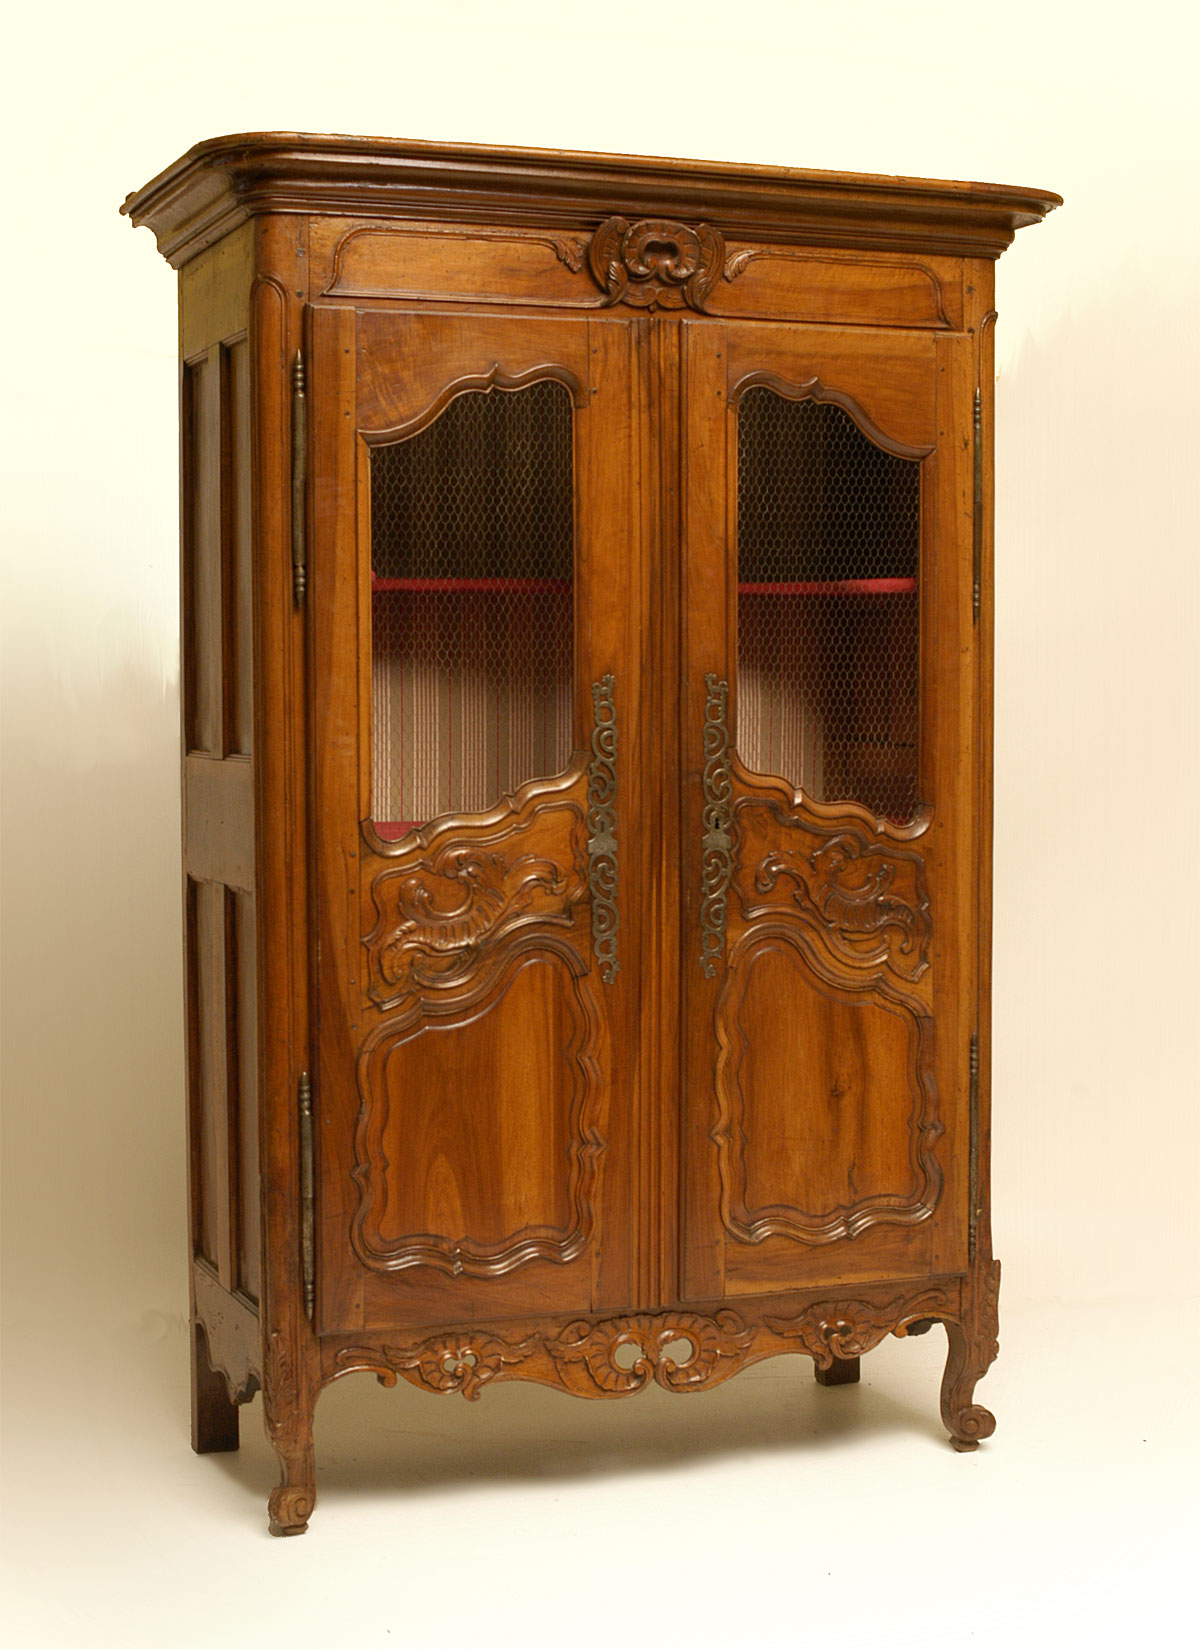 french nimoise regence period armoire for sale classifieds. Black Bedroom Furniture Sets. Home Design Ideas